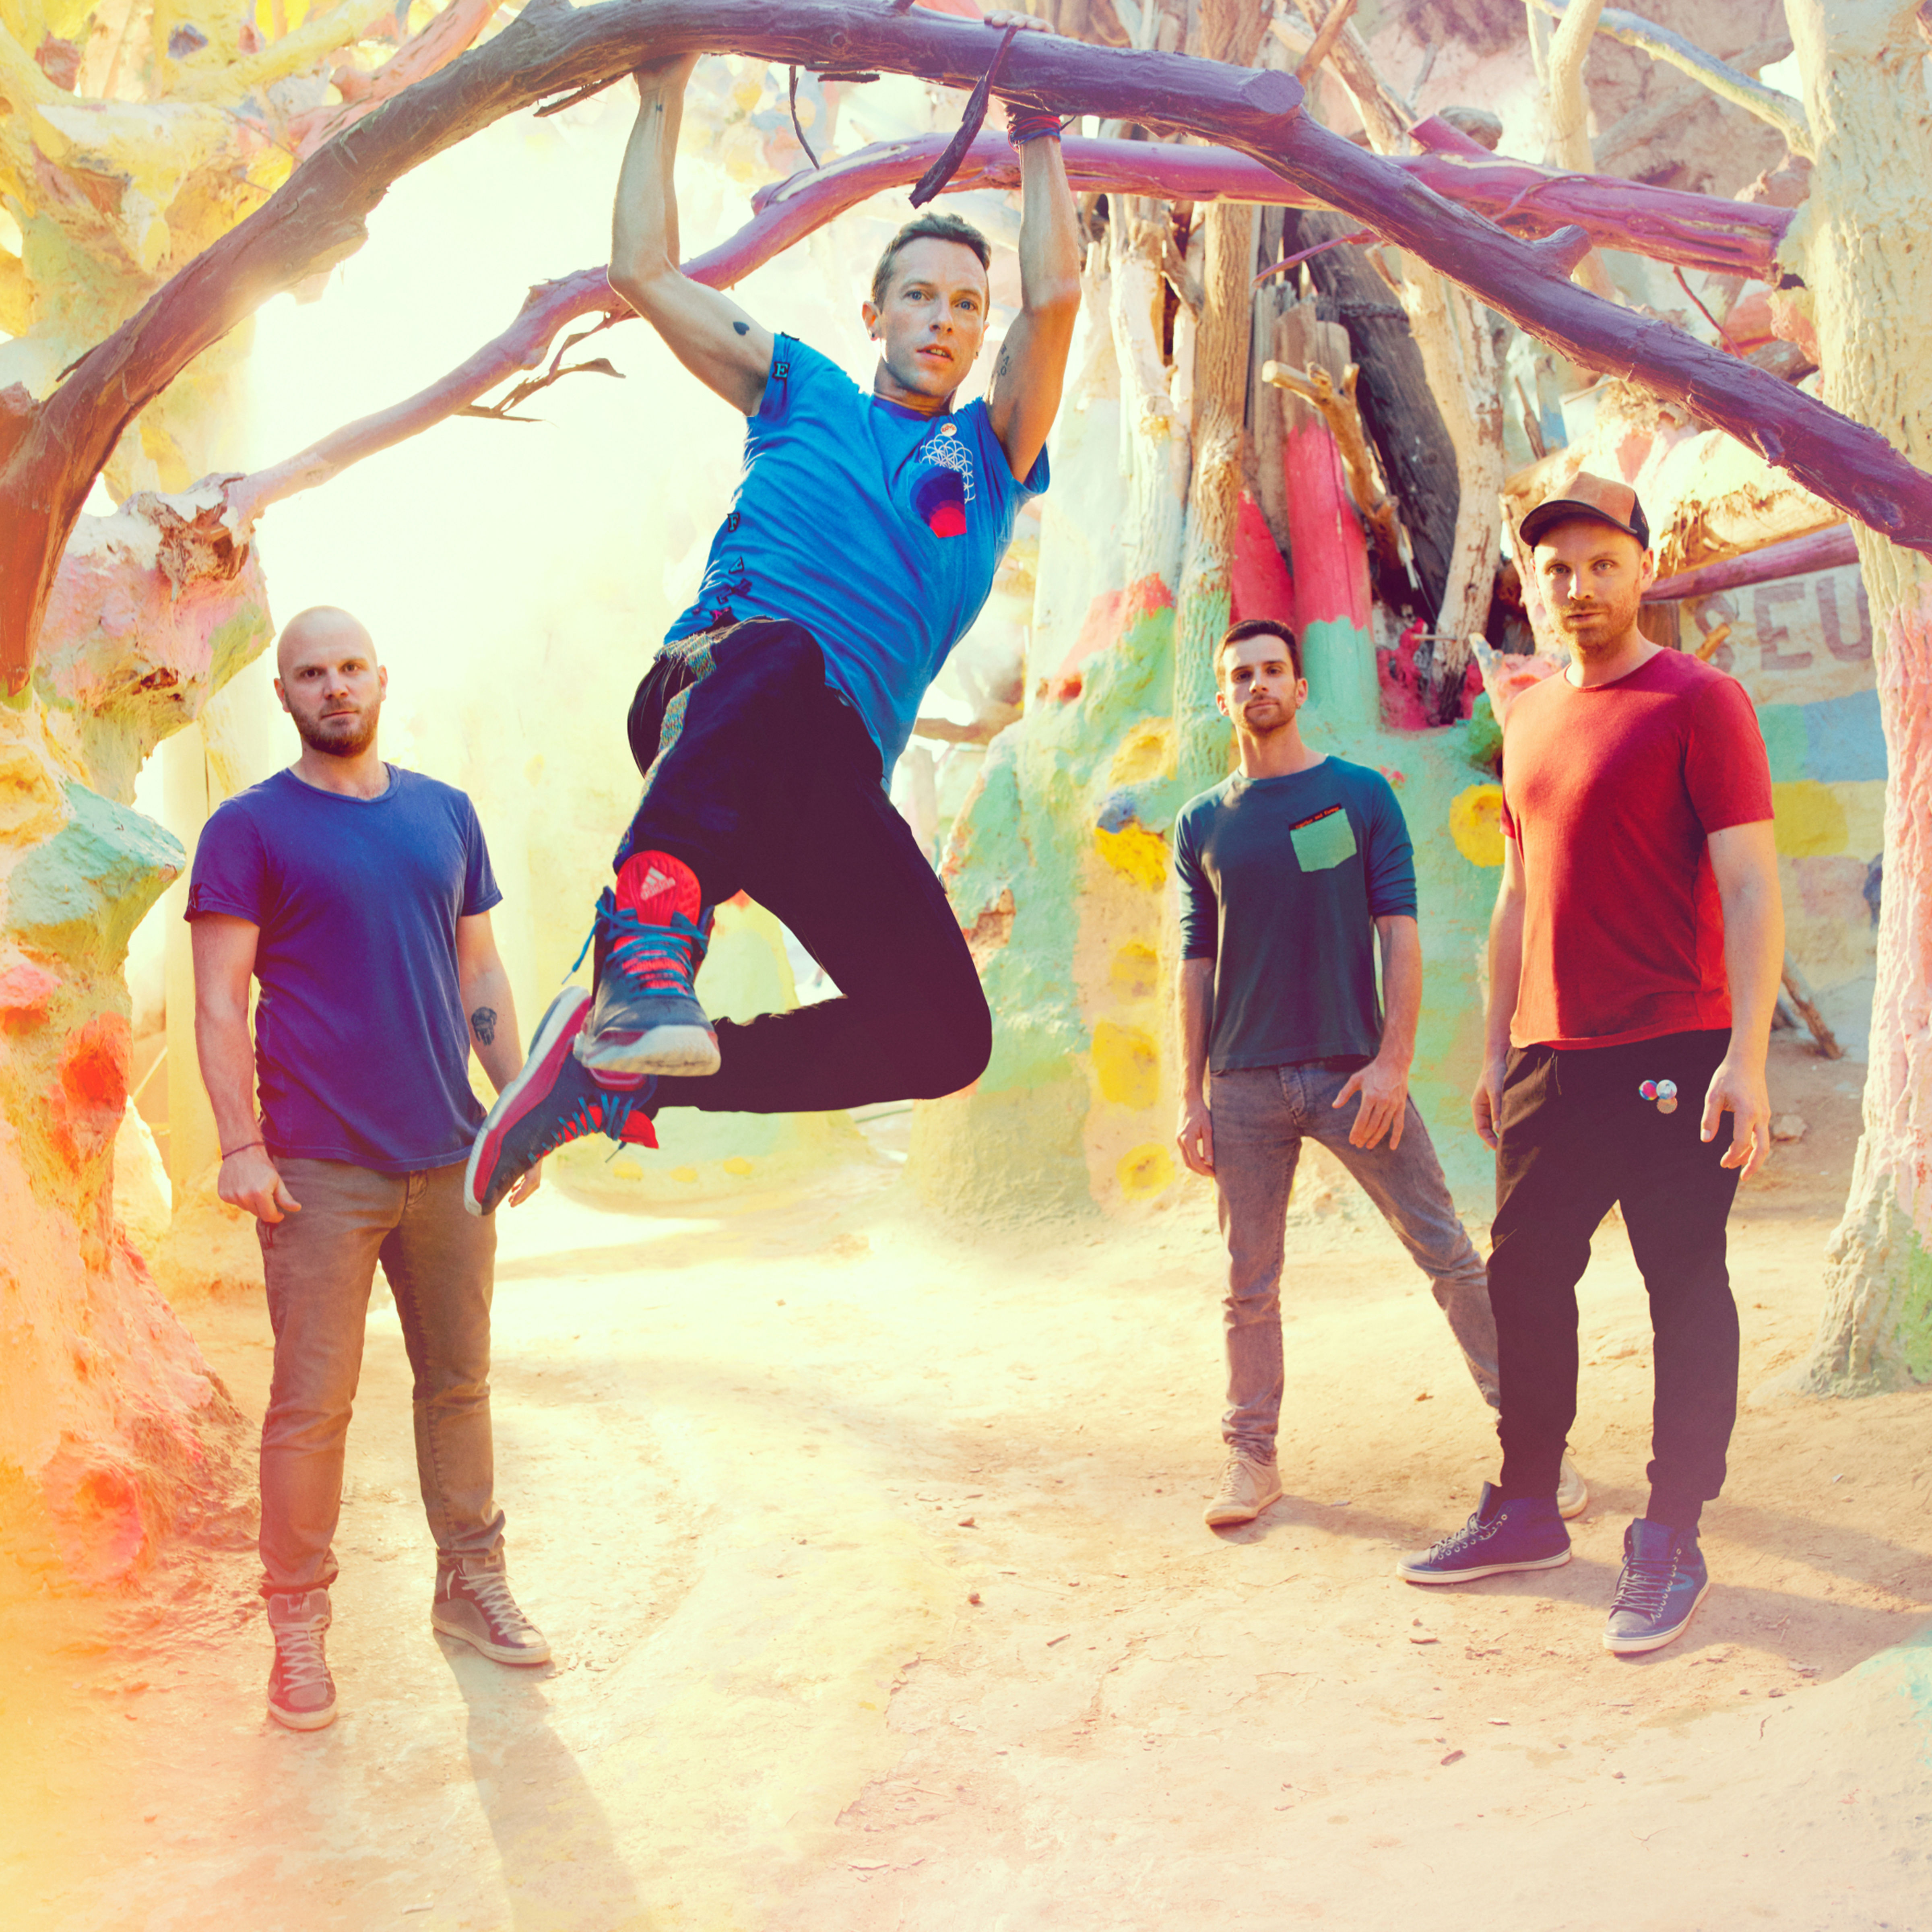 Coldplay Biography and Music